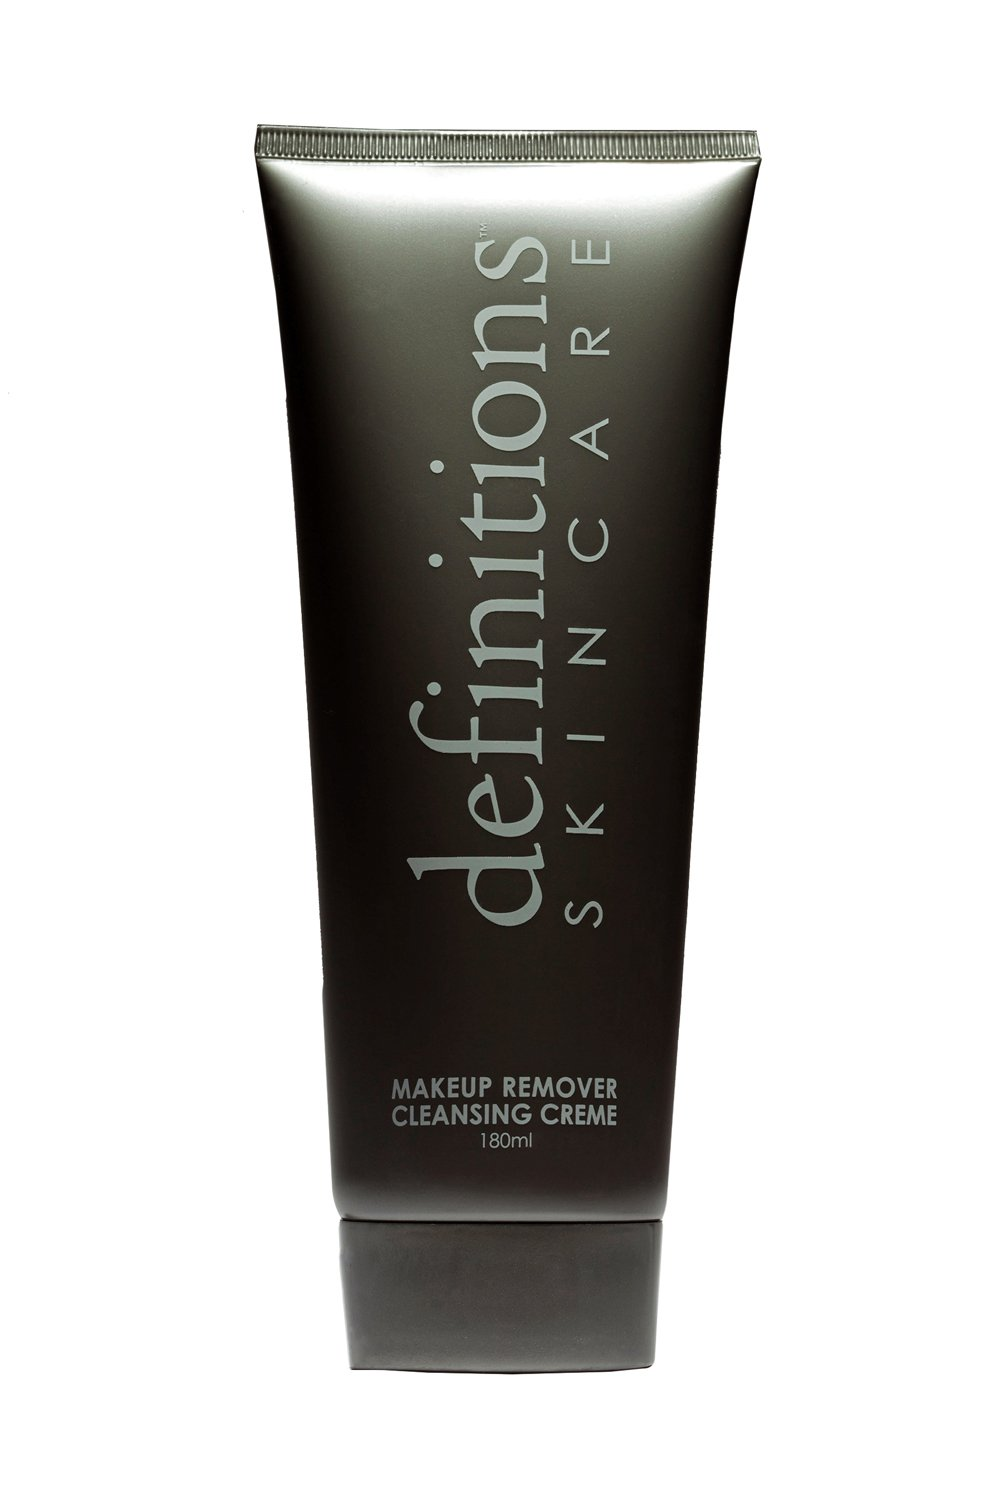 Definitions Skincare Makeup Remover Cleansing Creme, 6 Ounce